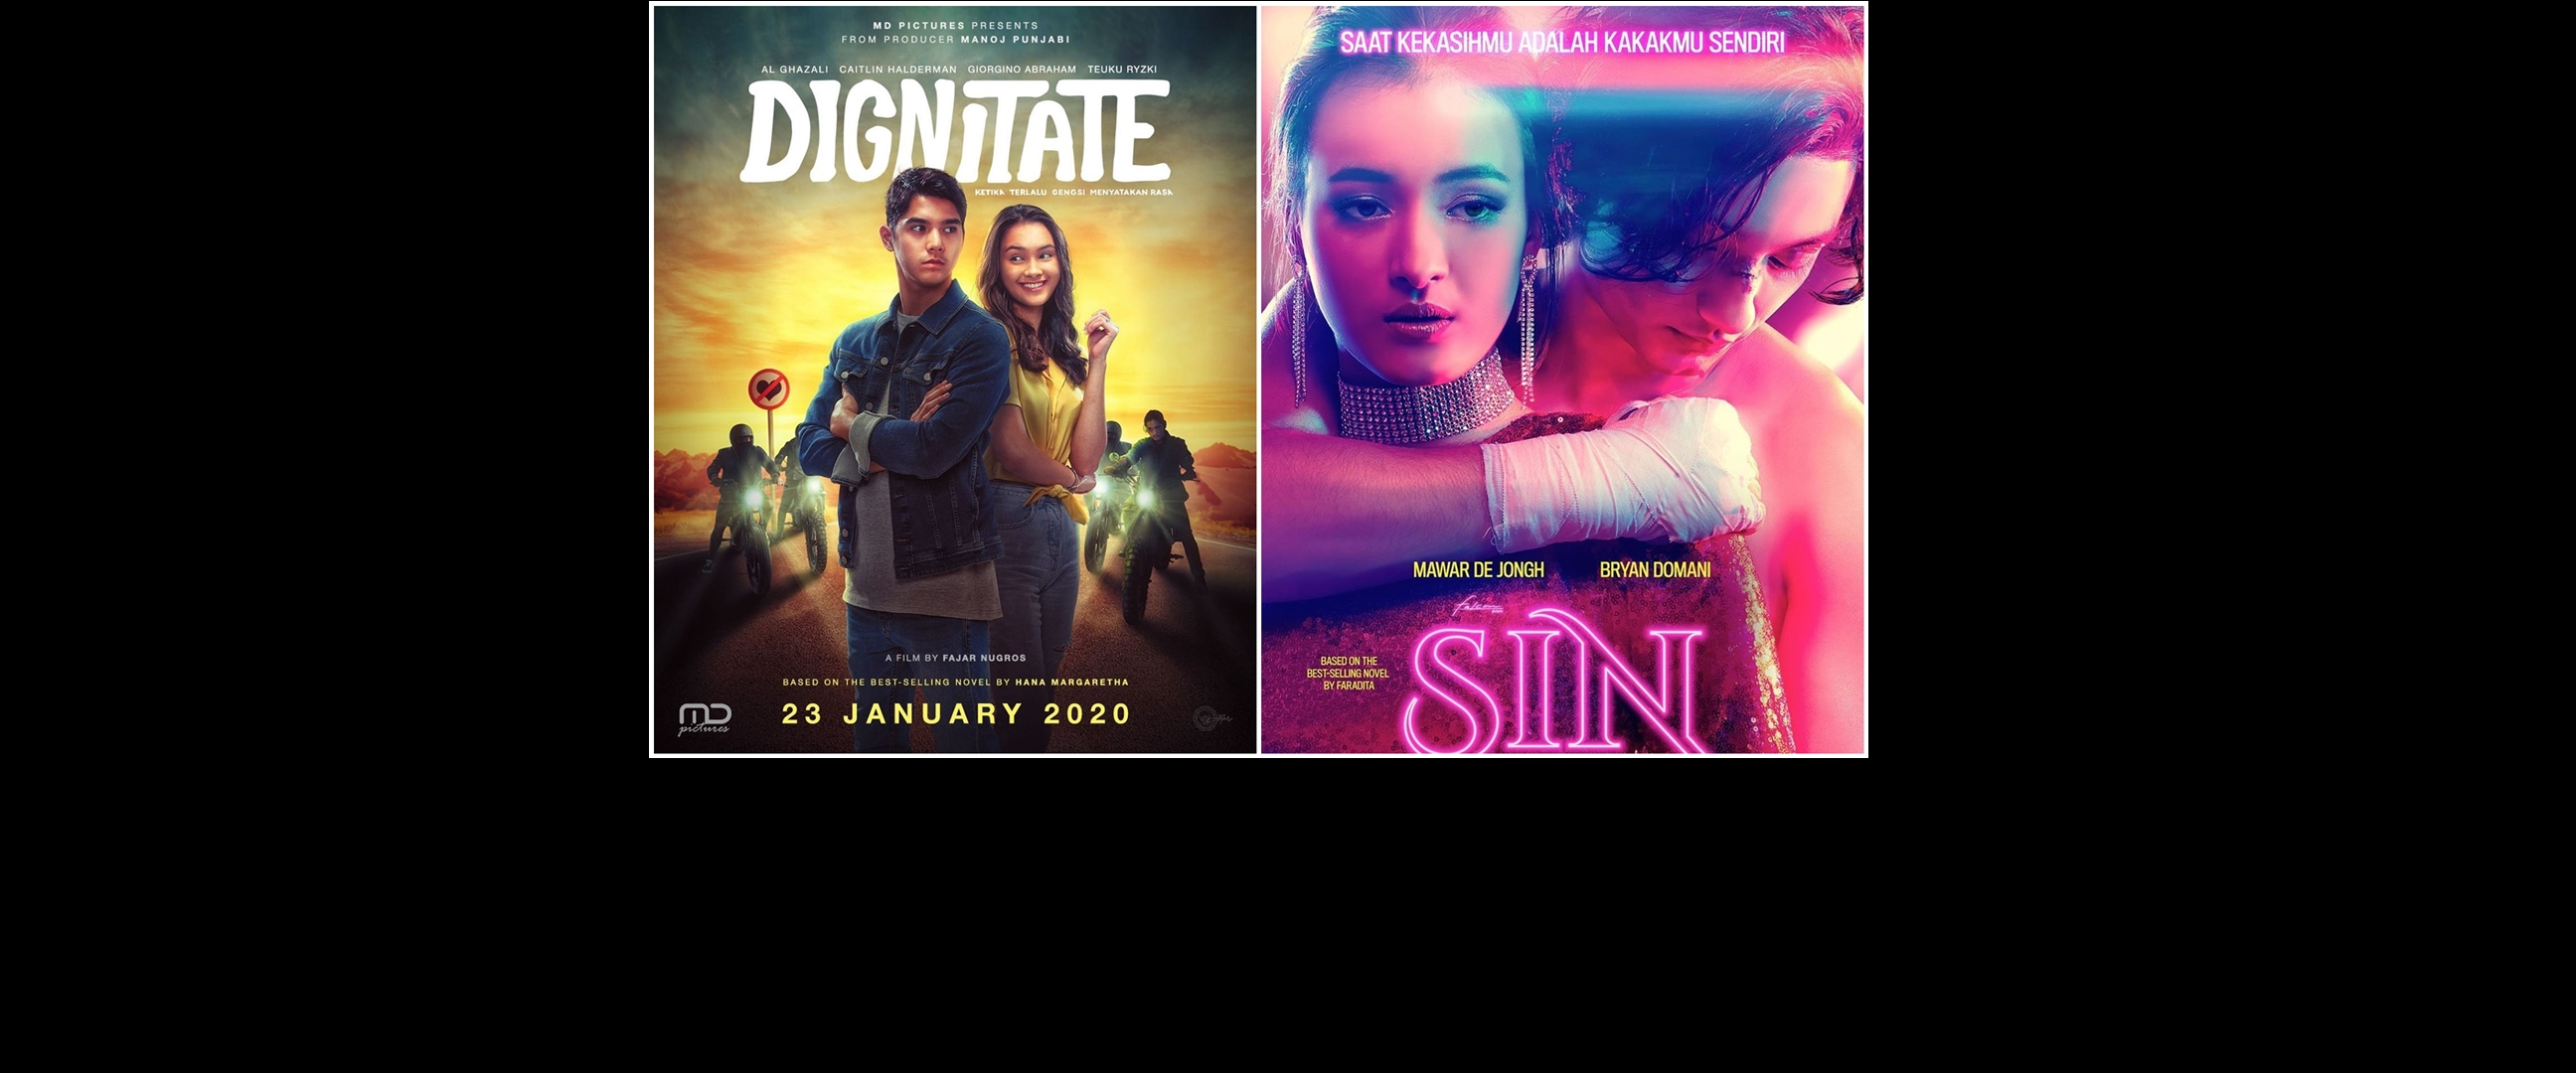 11 Film Indonesia adaptasi Wattpad, terbaru Dignitate